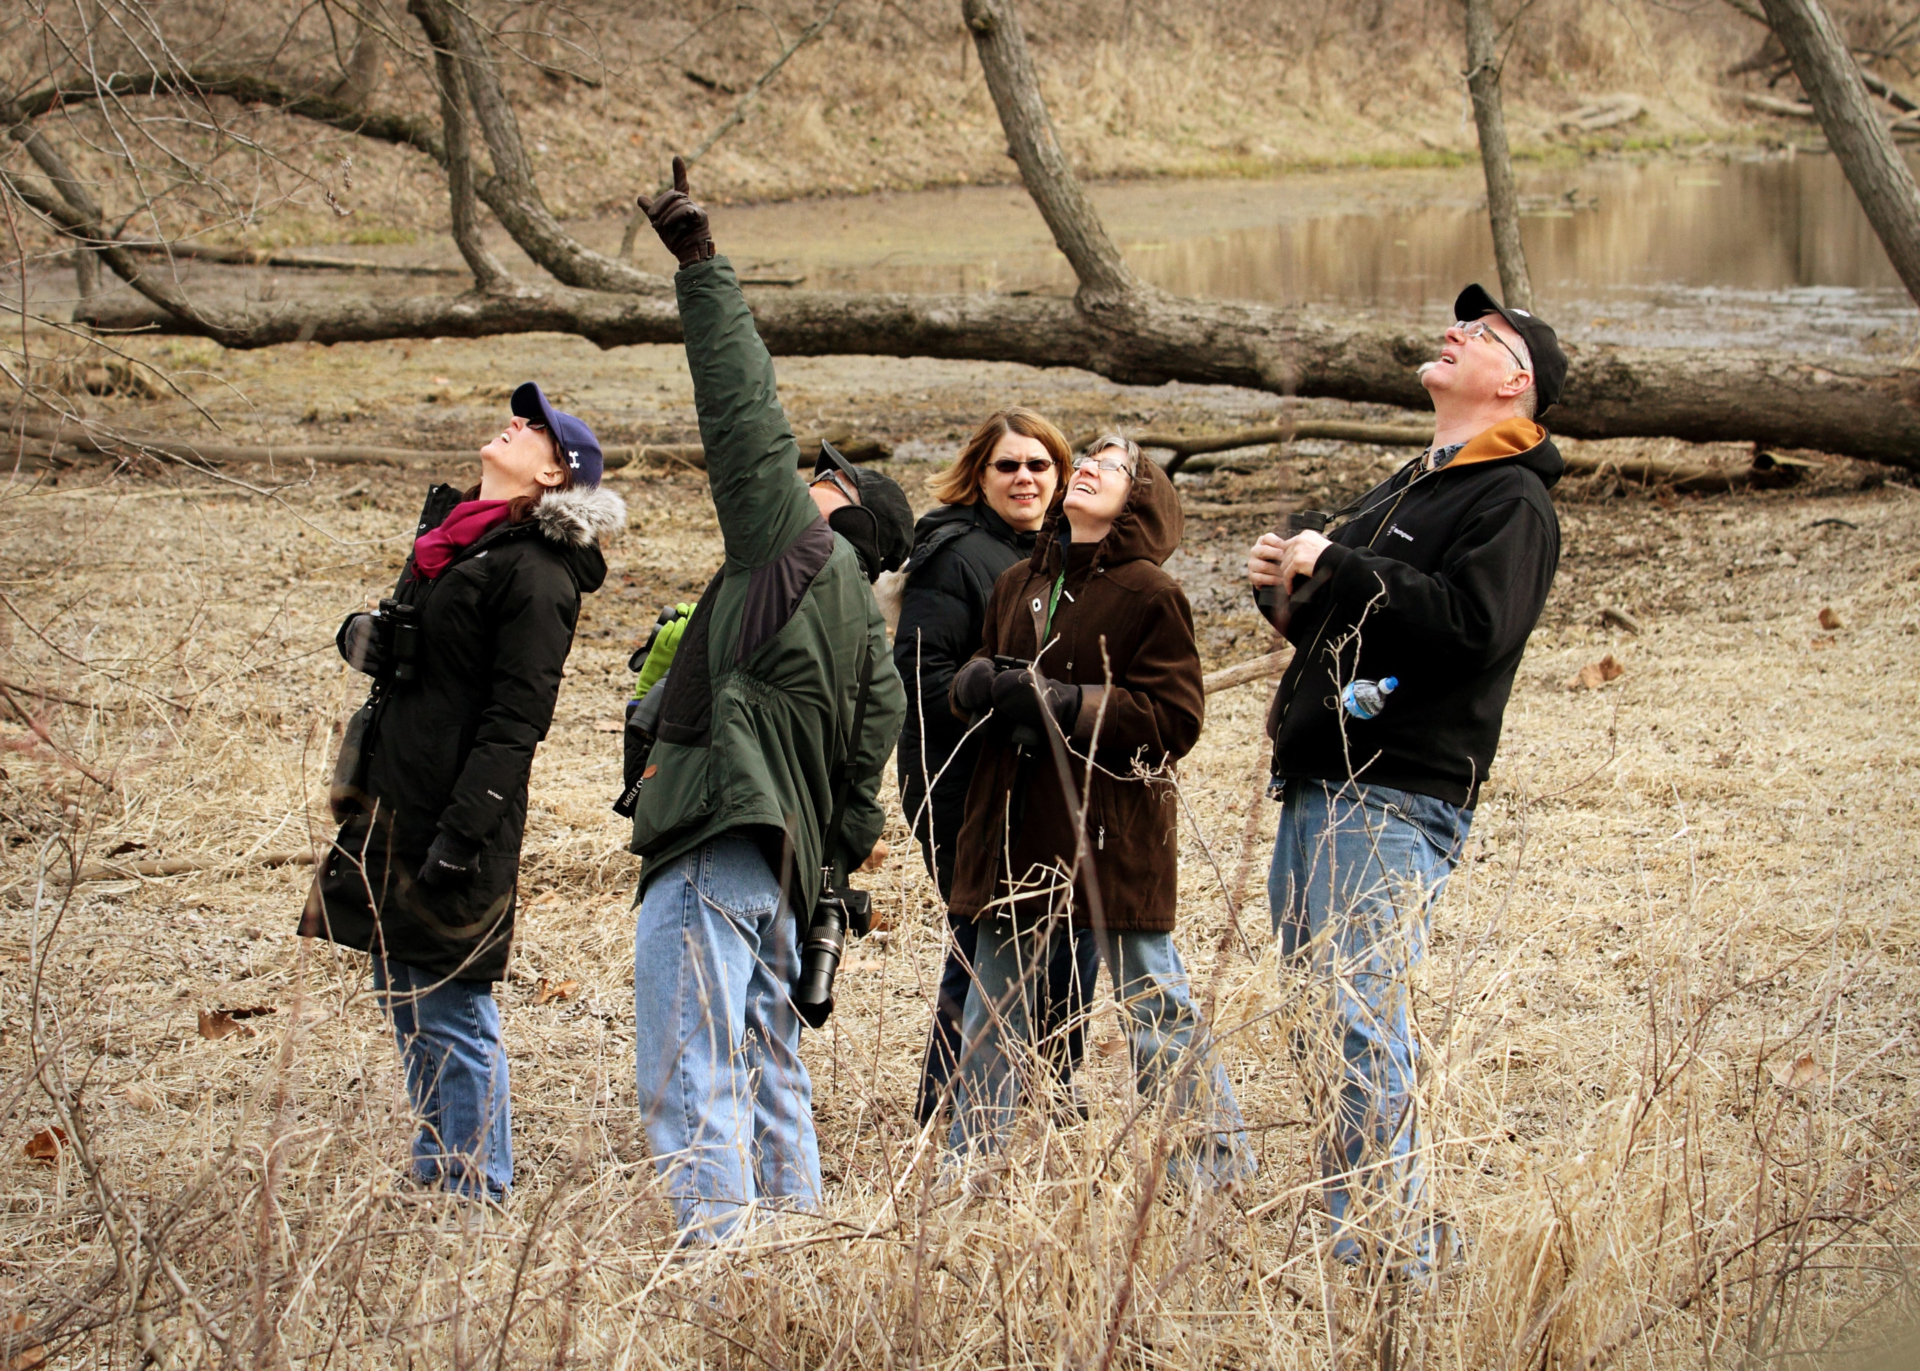 Group of people looking up and pointing at birds